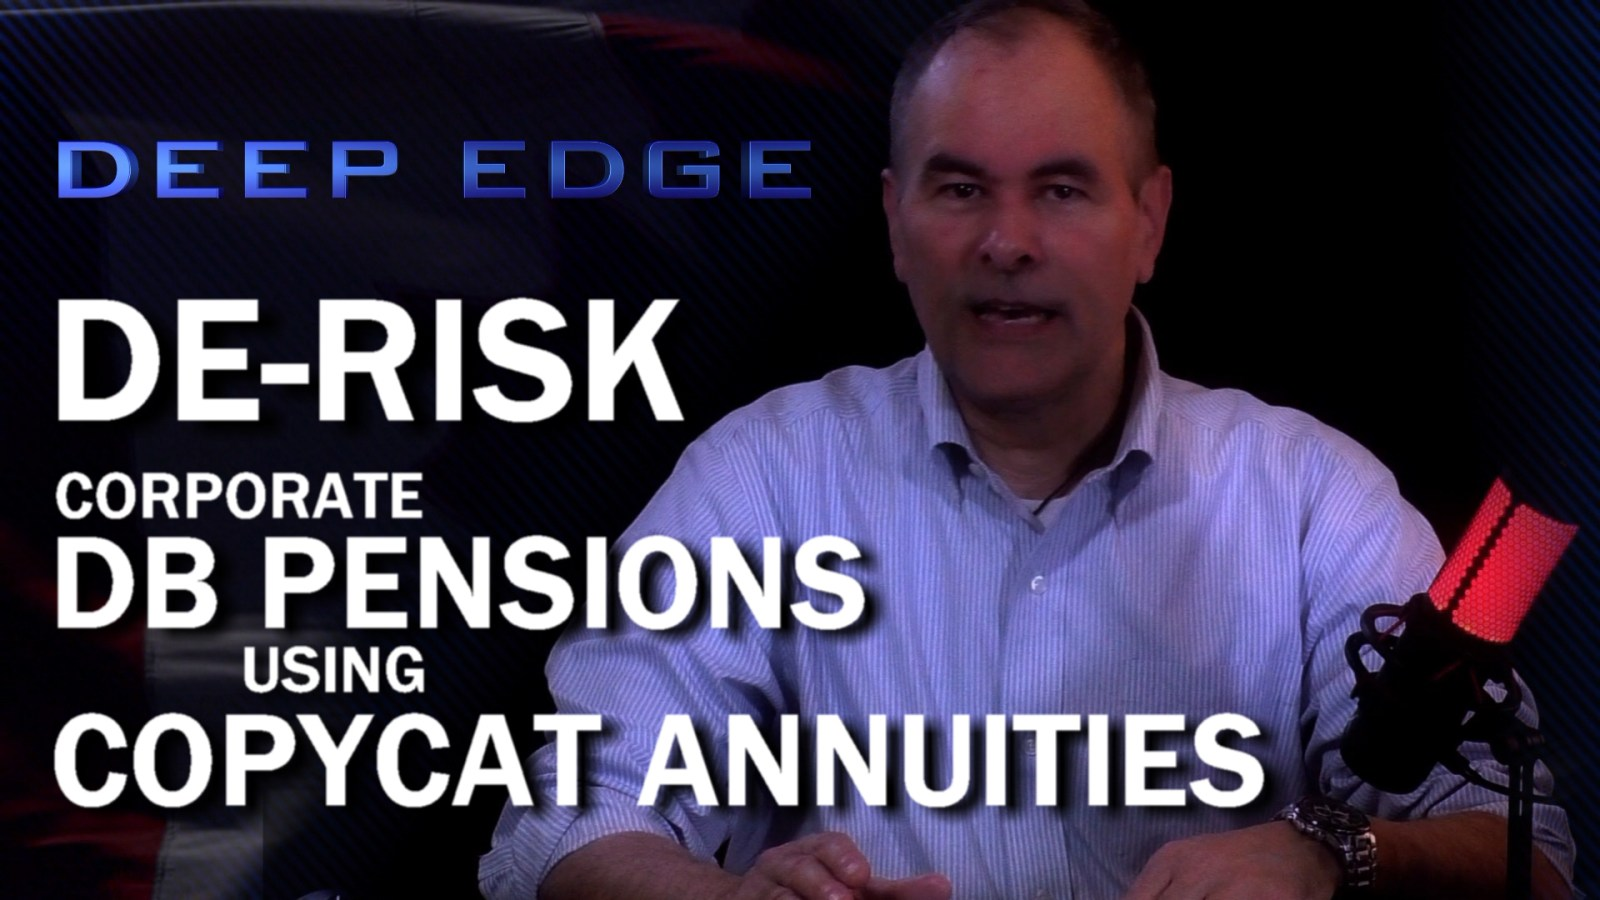 De-Risk DB Pension Plans Using Copycat Annuities